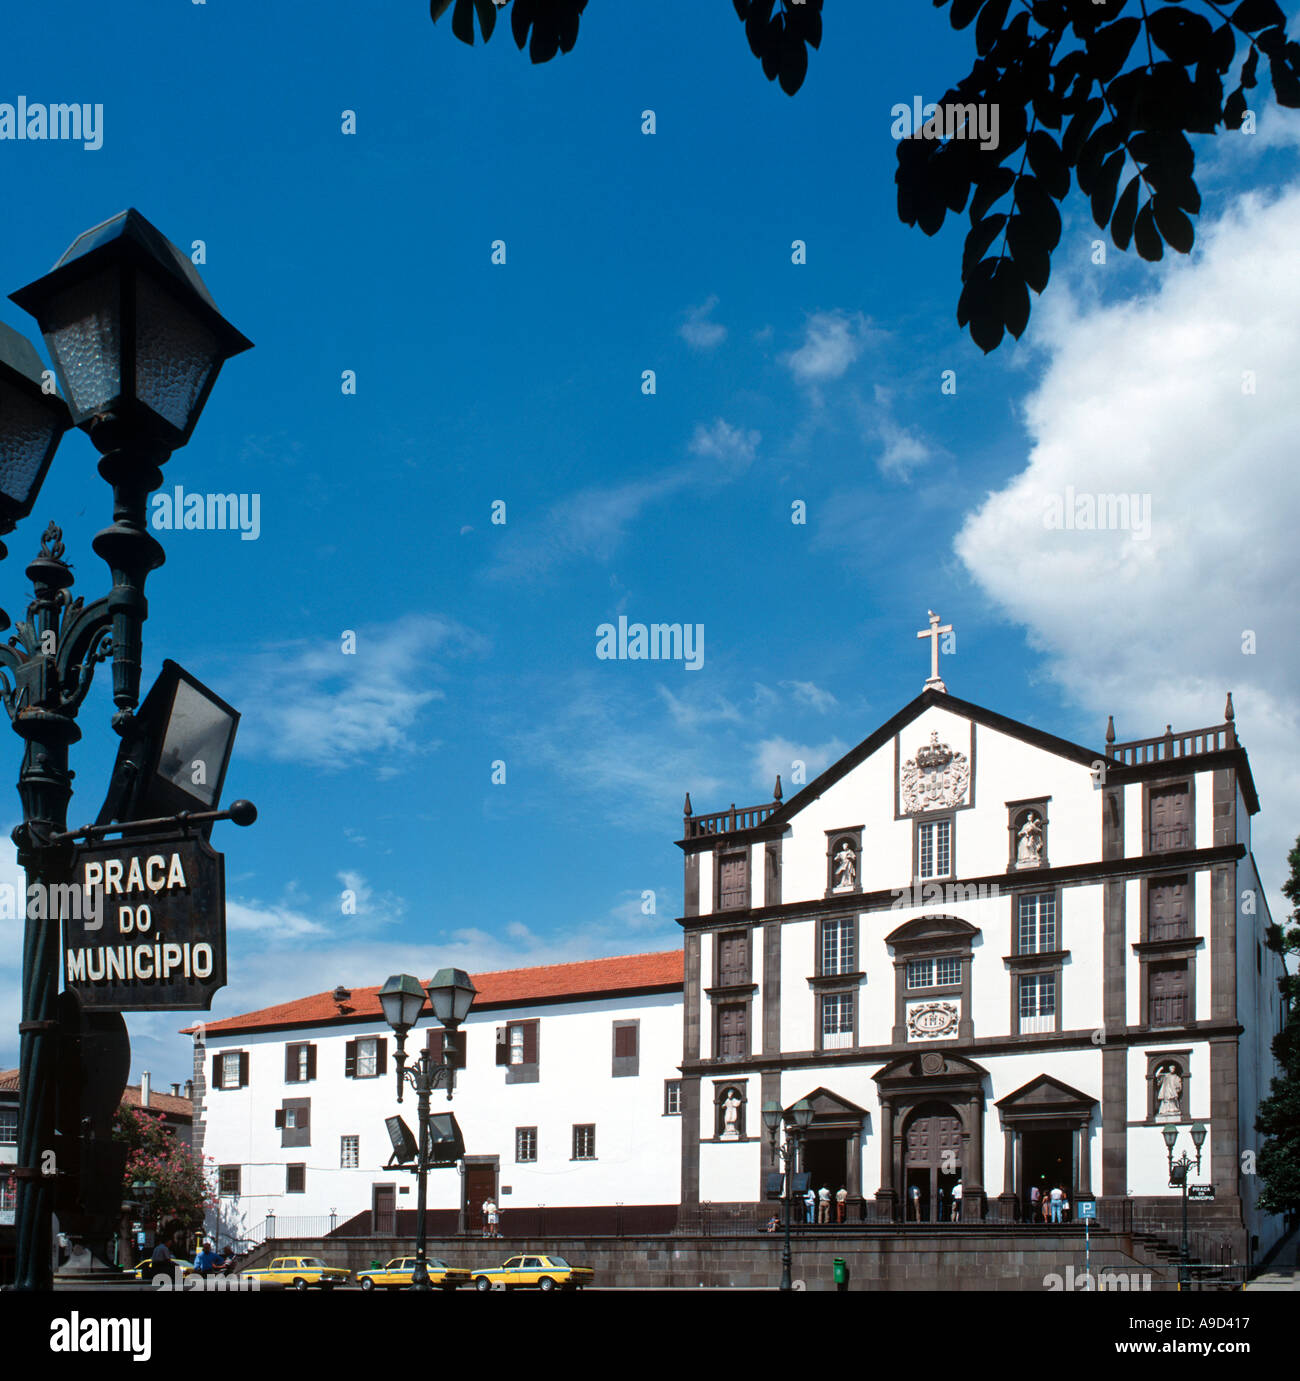 Praca do Municipio (Main Square), Funchal, Madeira, Portugal - Stock Image